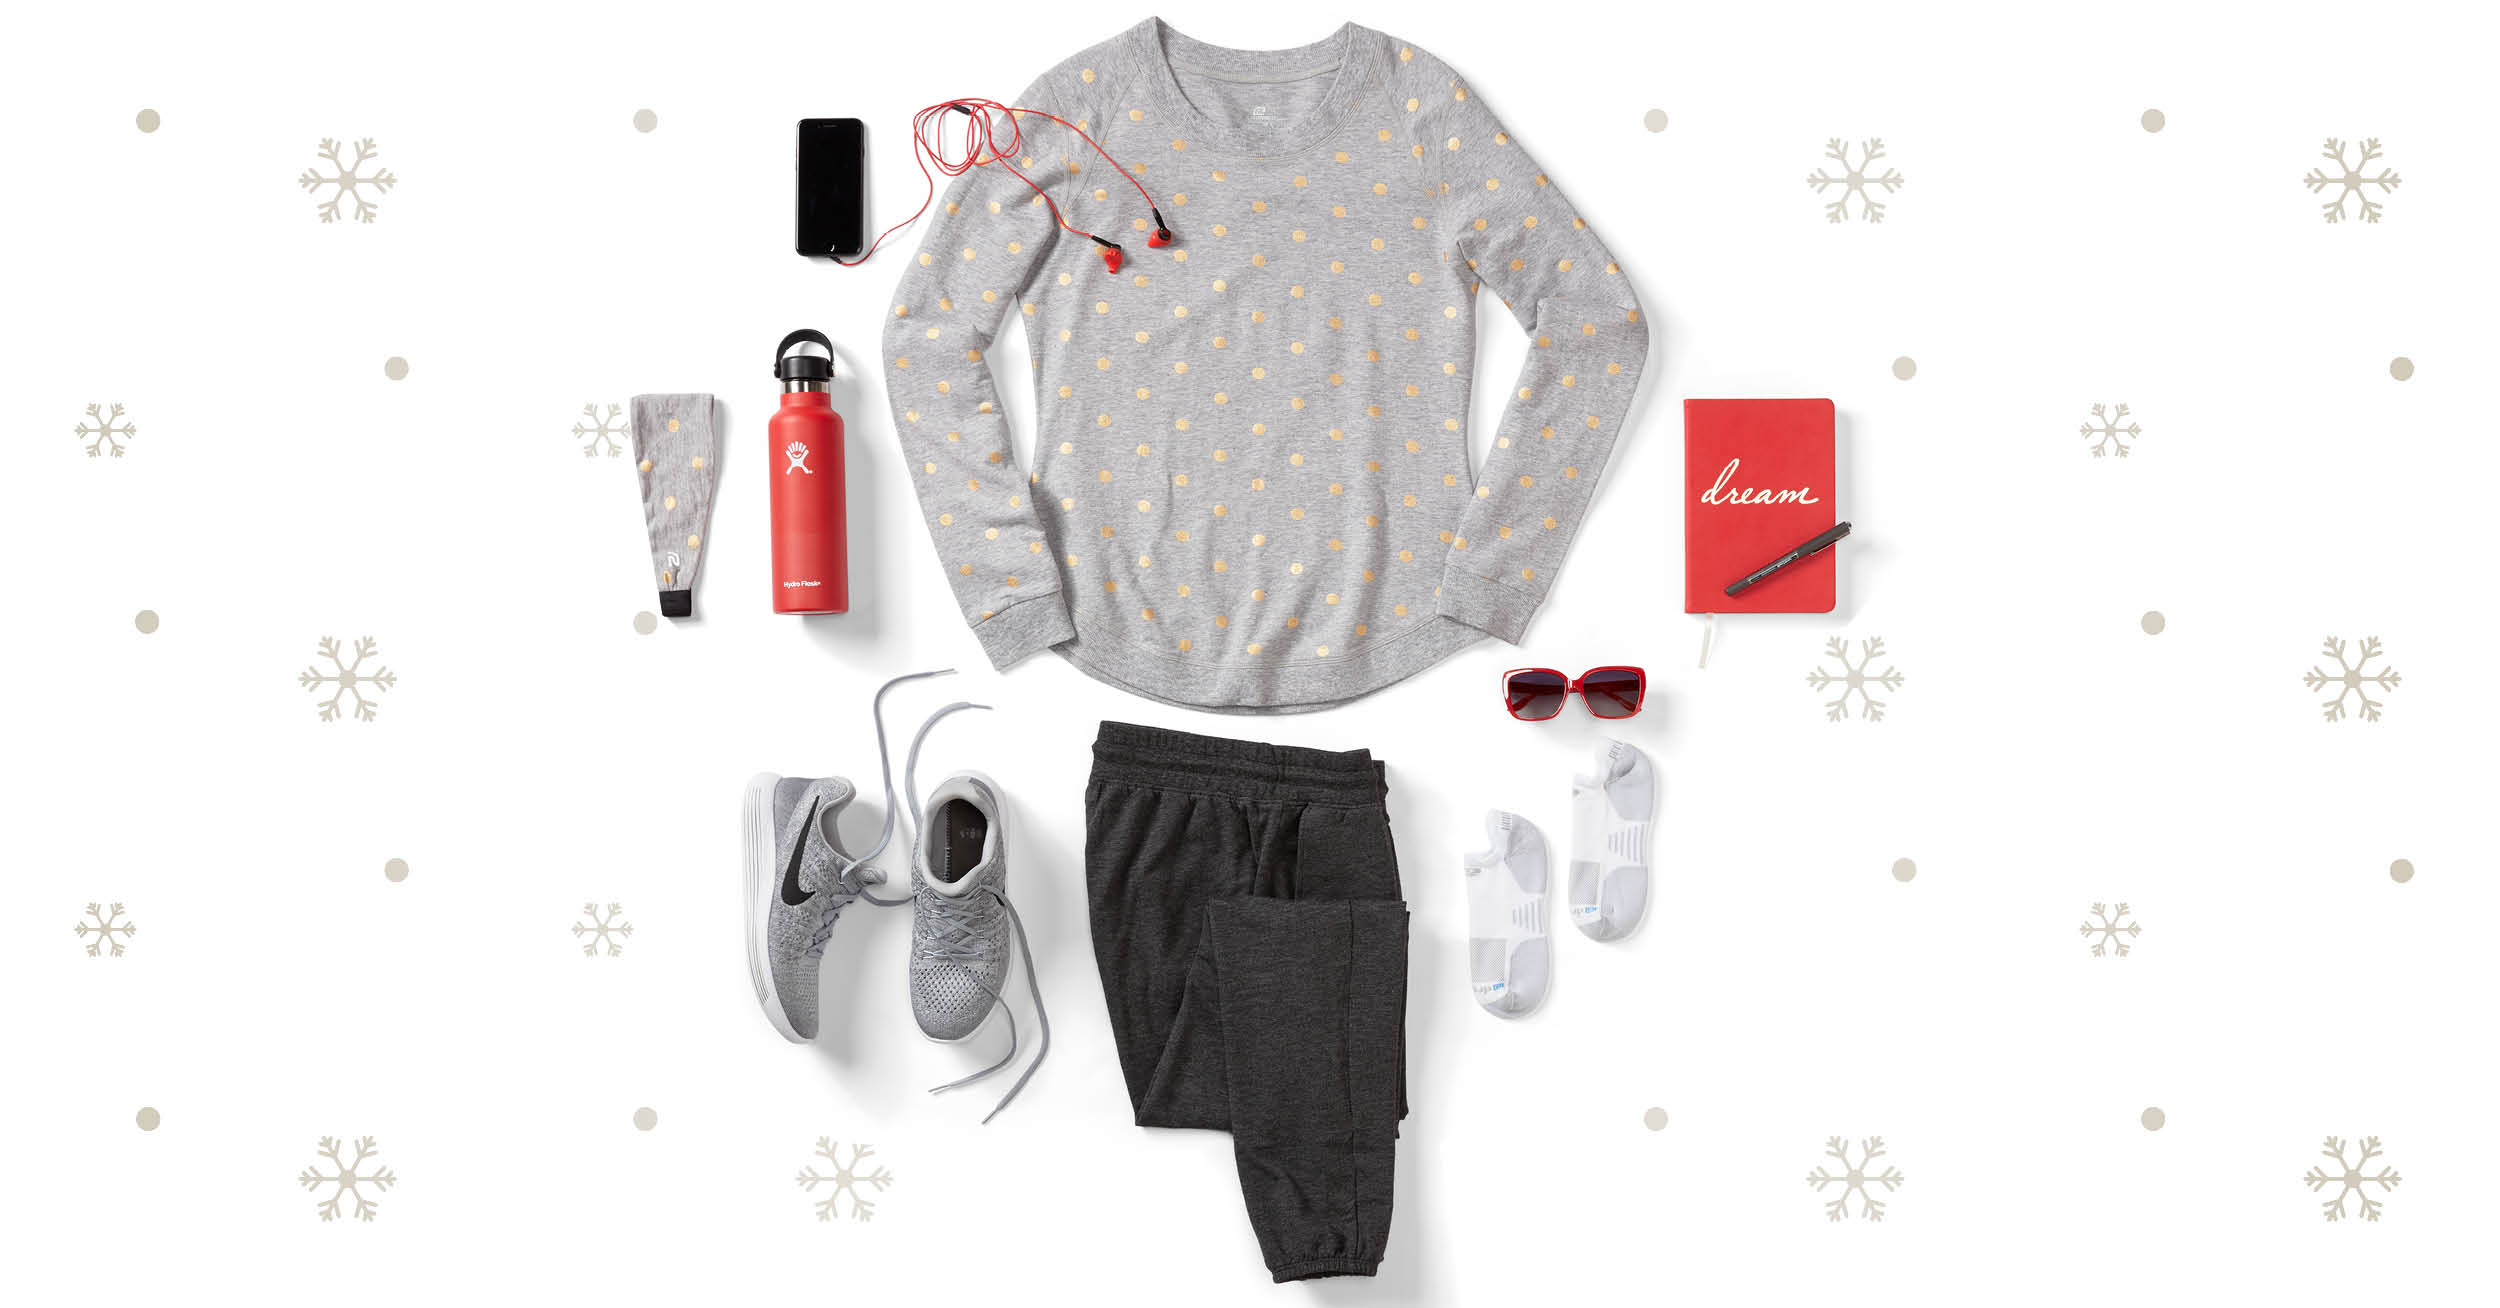 6468bbcfab92f 24 7 Holiday Gift Guide  Athleisure Gifts for That Friend Who Blends ...